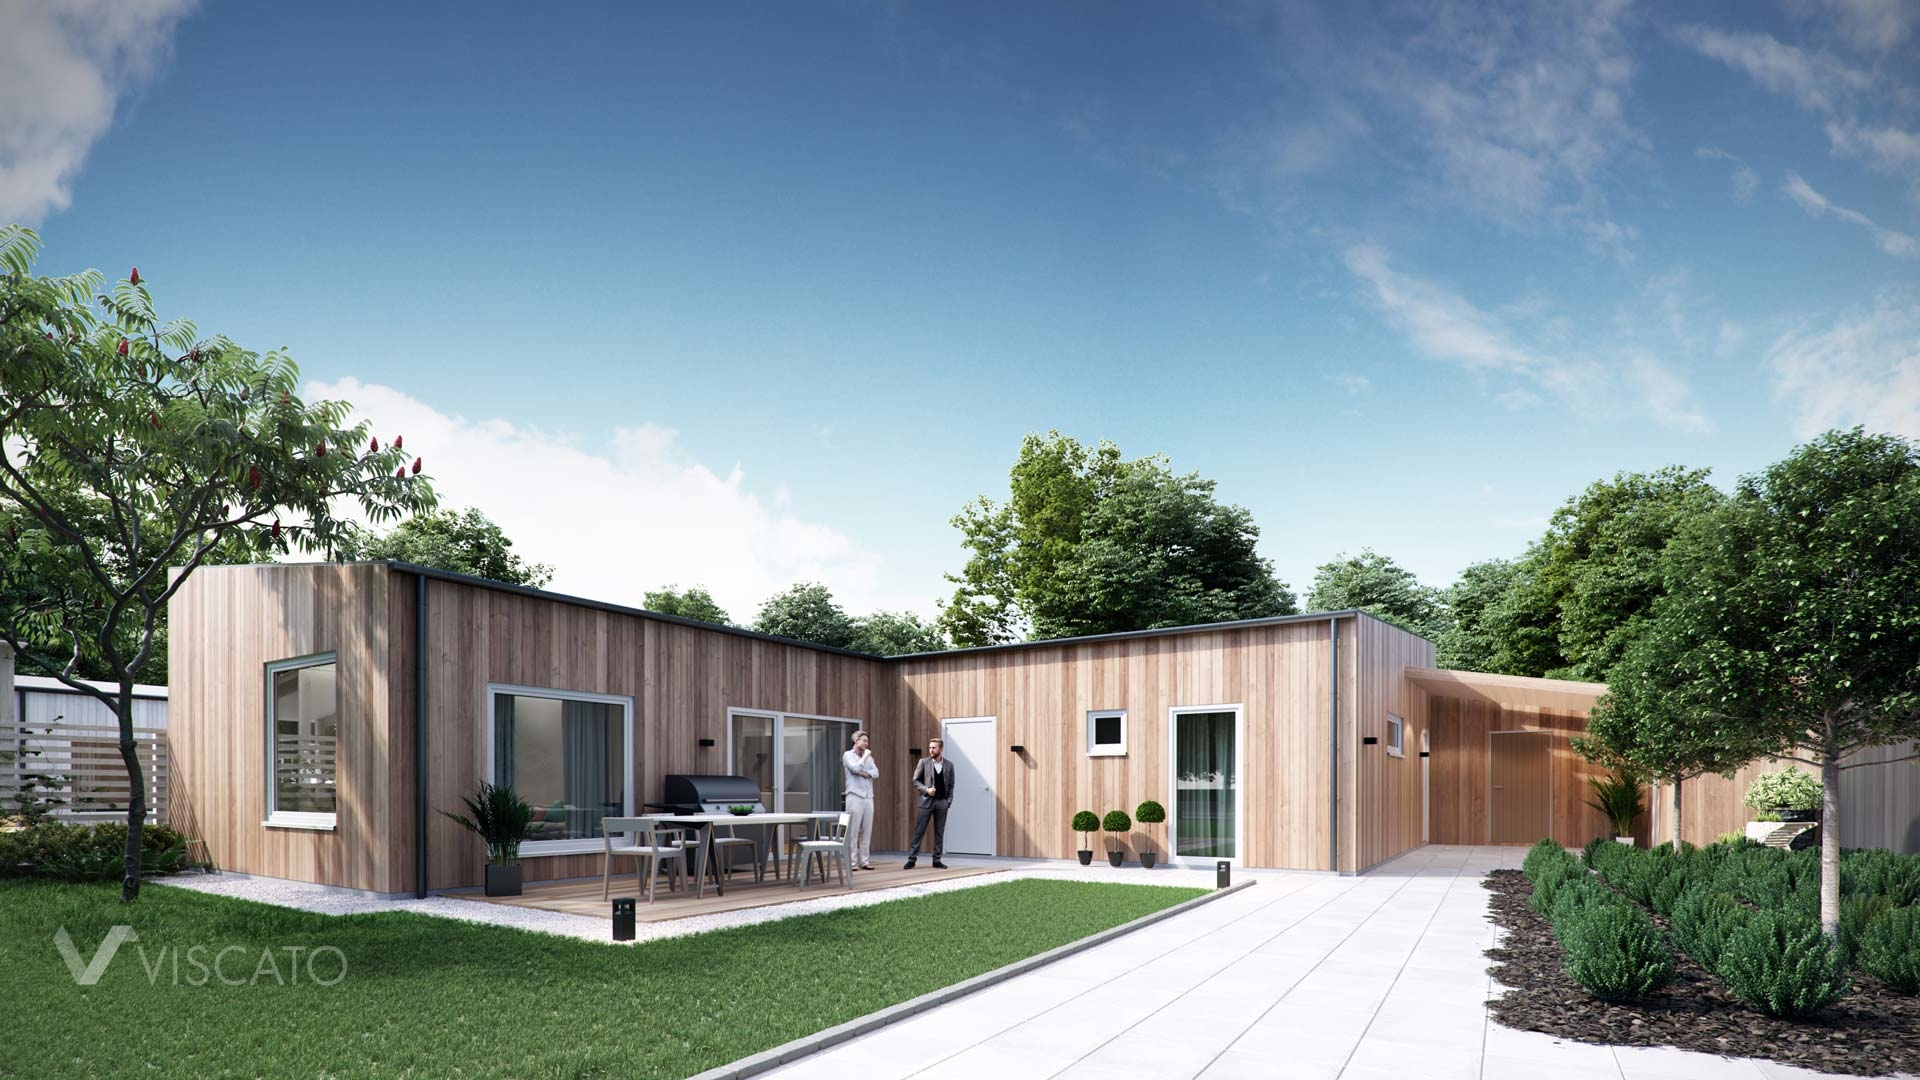 3D architectural vizualization of a house with wooden siding- Viscato